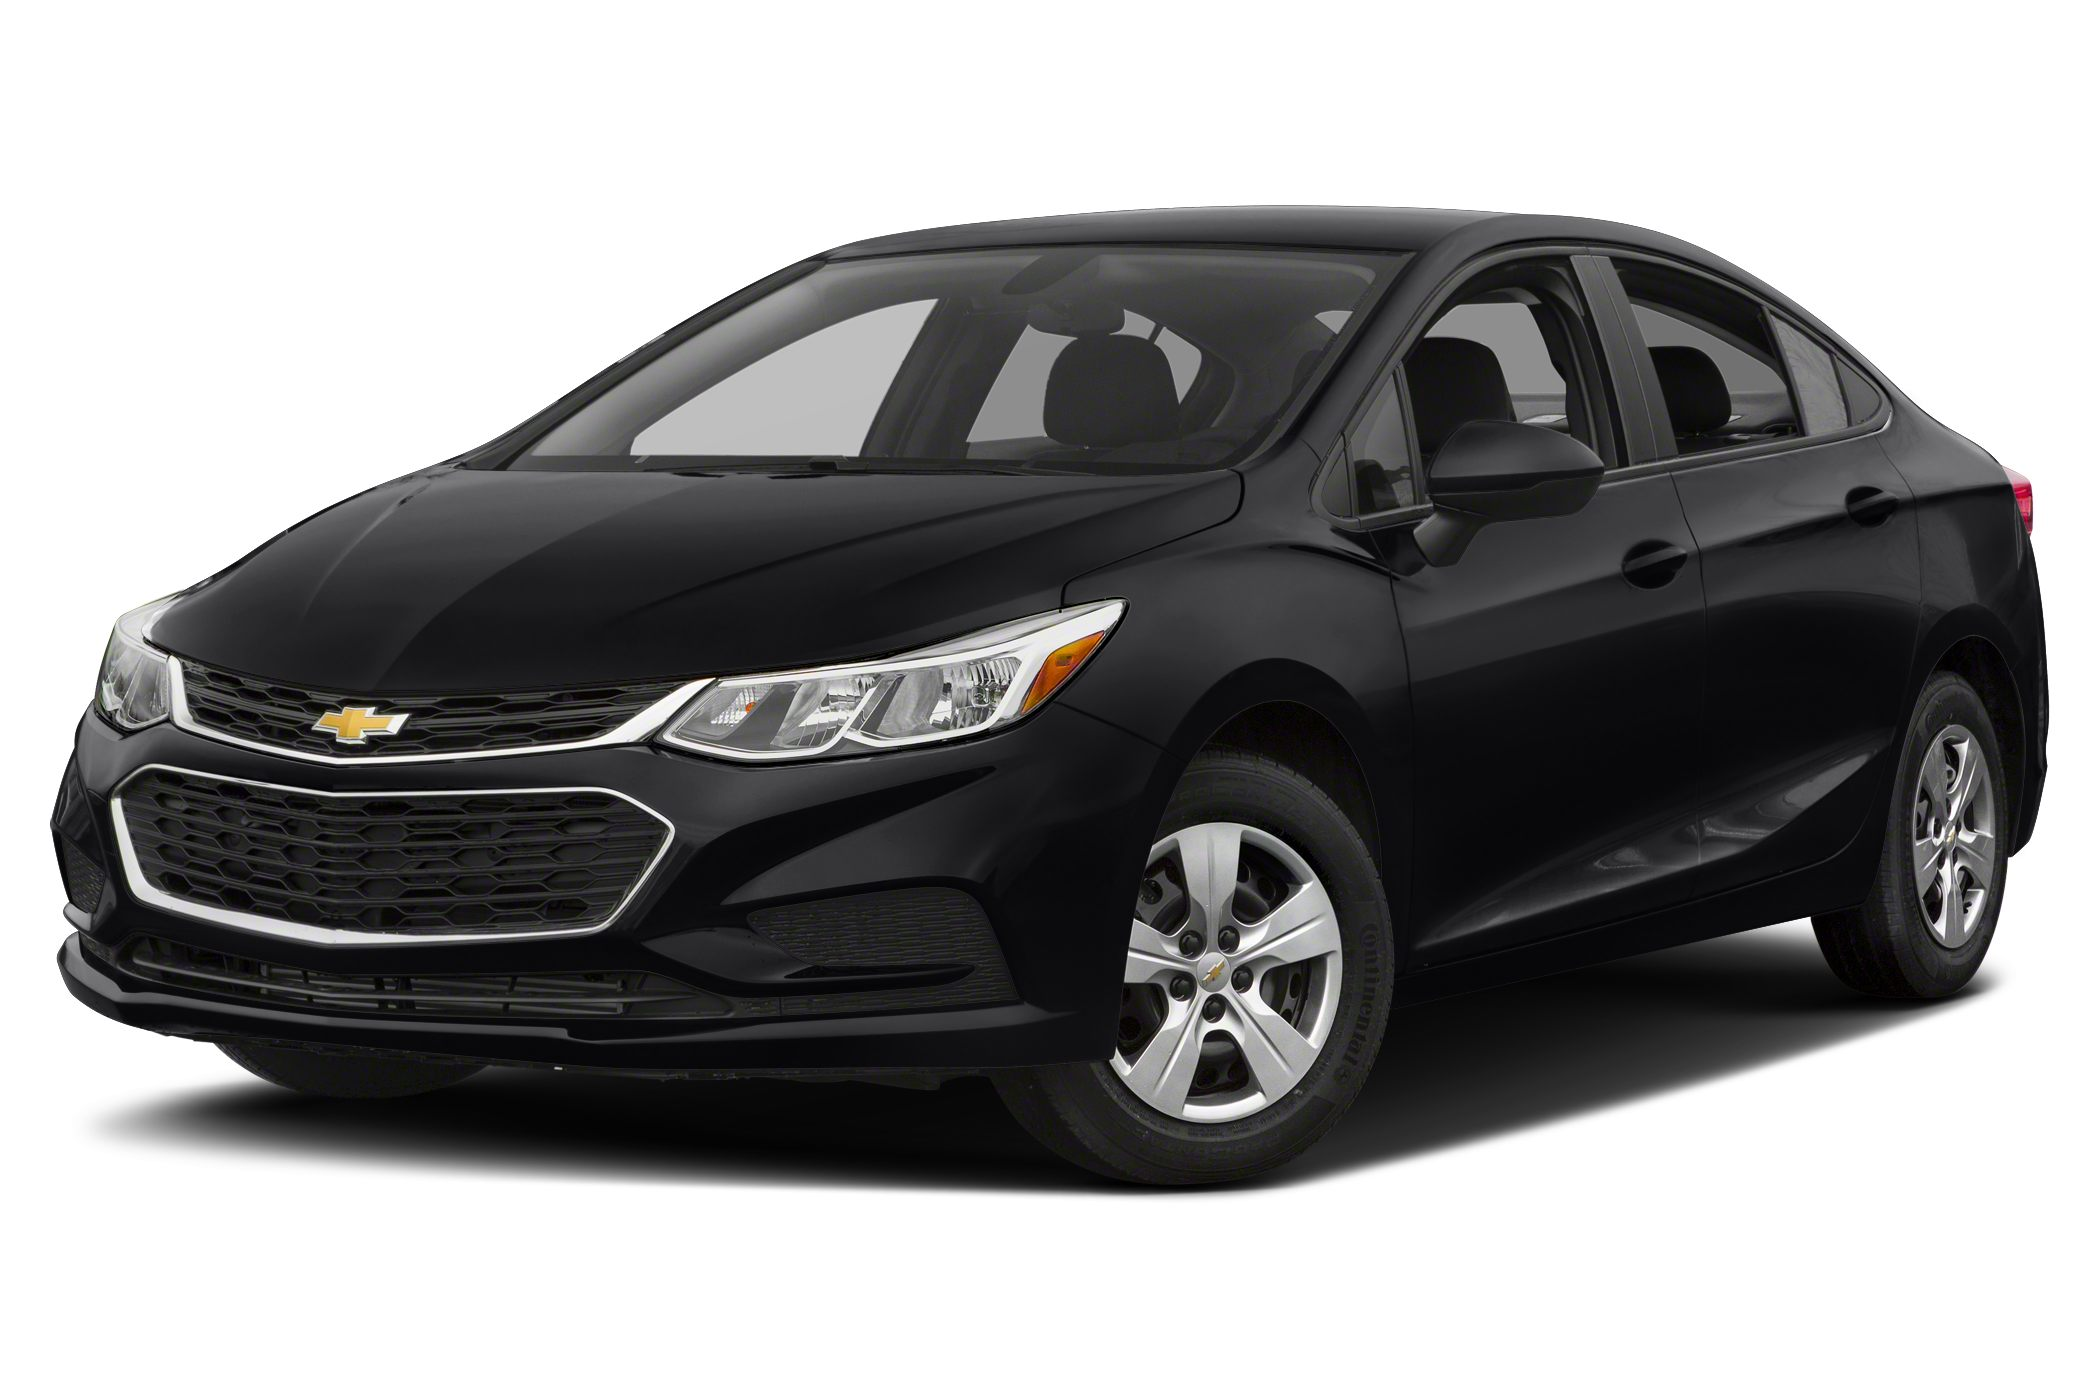 2018 Chevrolet Cruze LS Price includes 500 - General Motors Consumer Cash Program Exp 103120